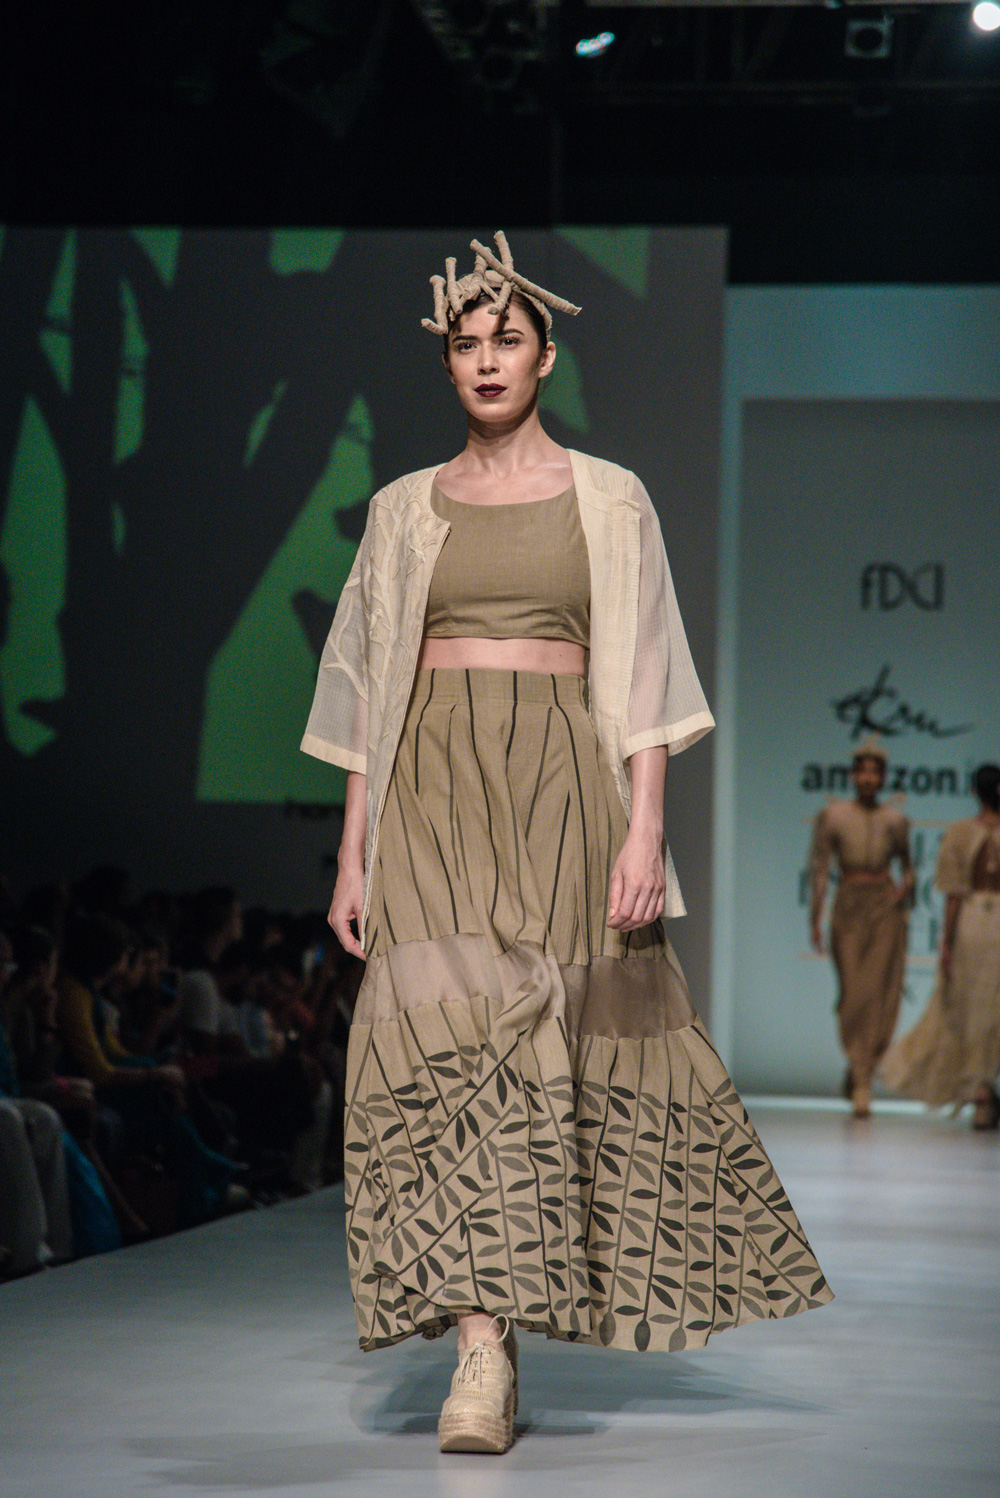 Ekru by Ektaa FDCI Amazon India Fashion Week Spring Summer 2018 Look 9